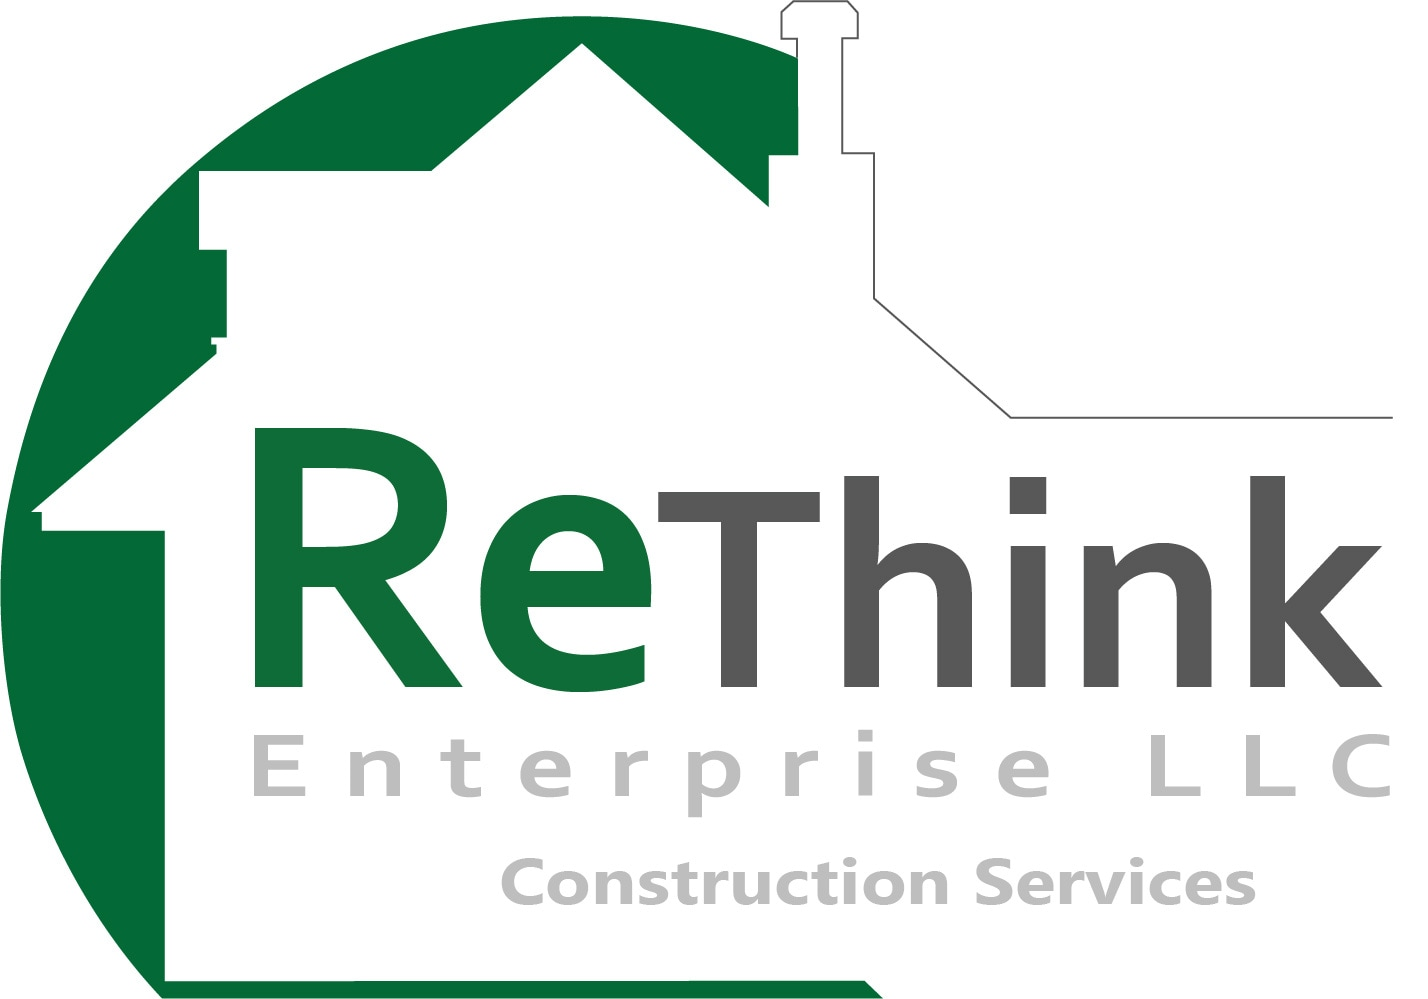 Rethink Enterprise